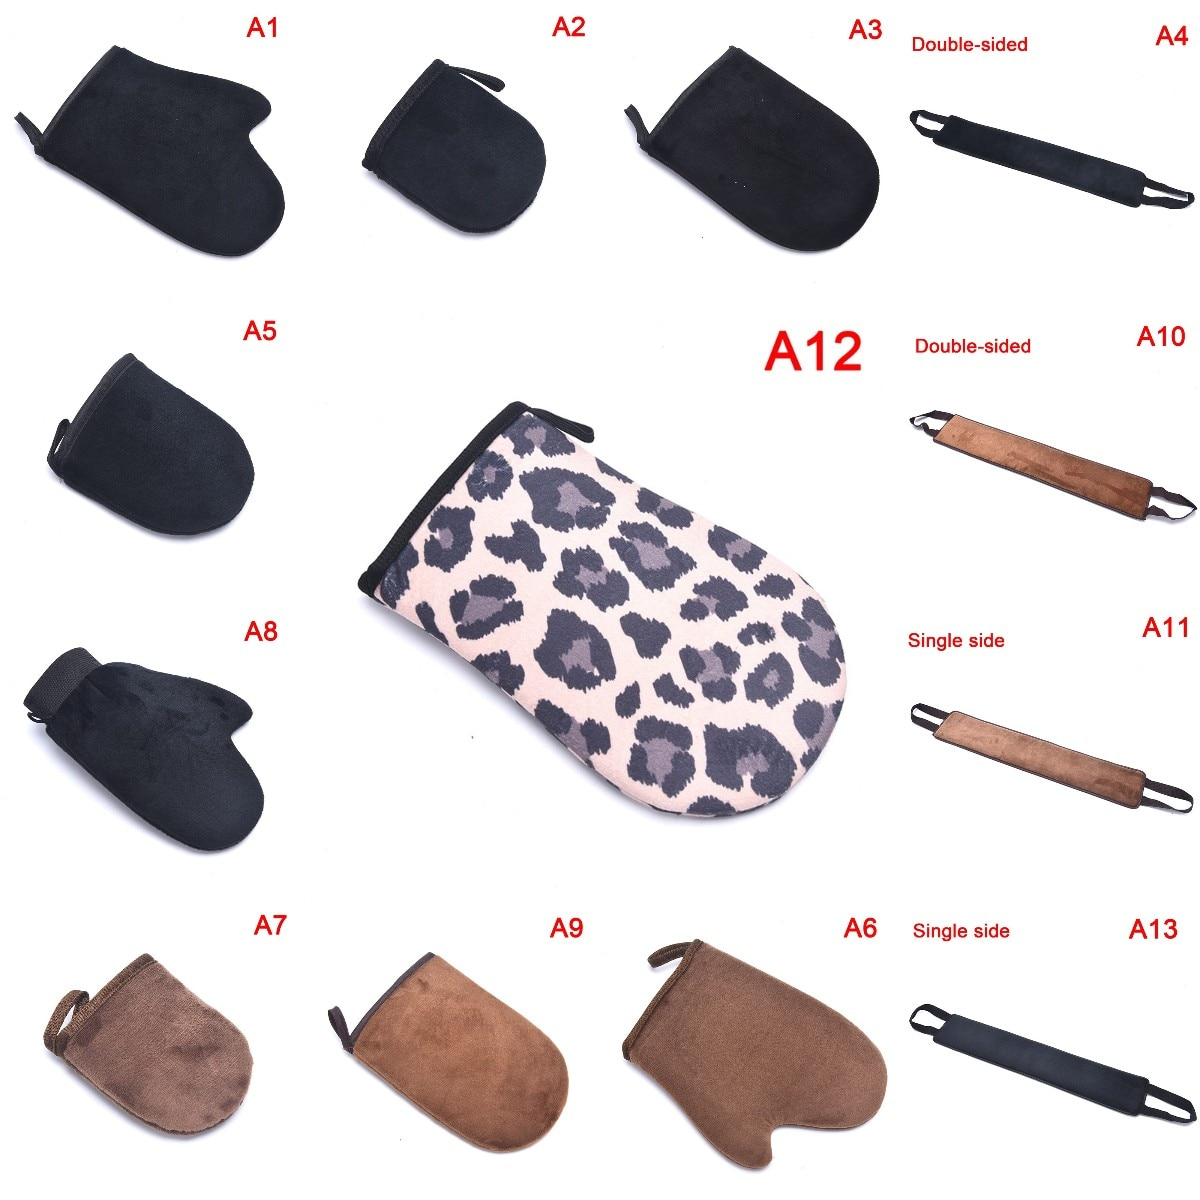 1pc Self Tanning Mitt Glove Reusable Body Face Bath Cleaning Tools Back Tan Applicator Exfoliating T